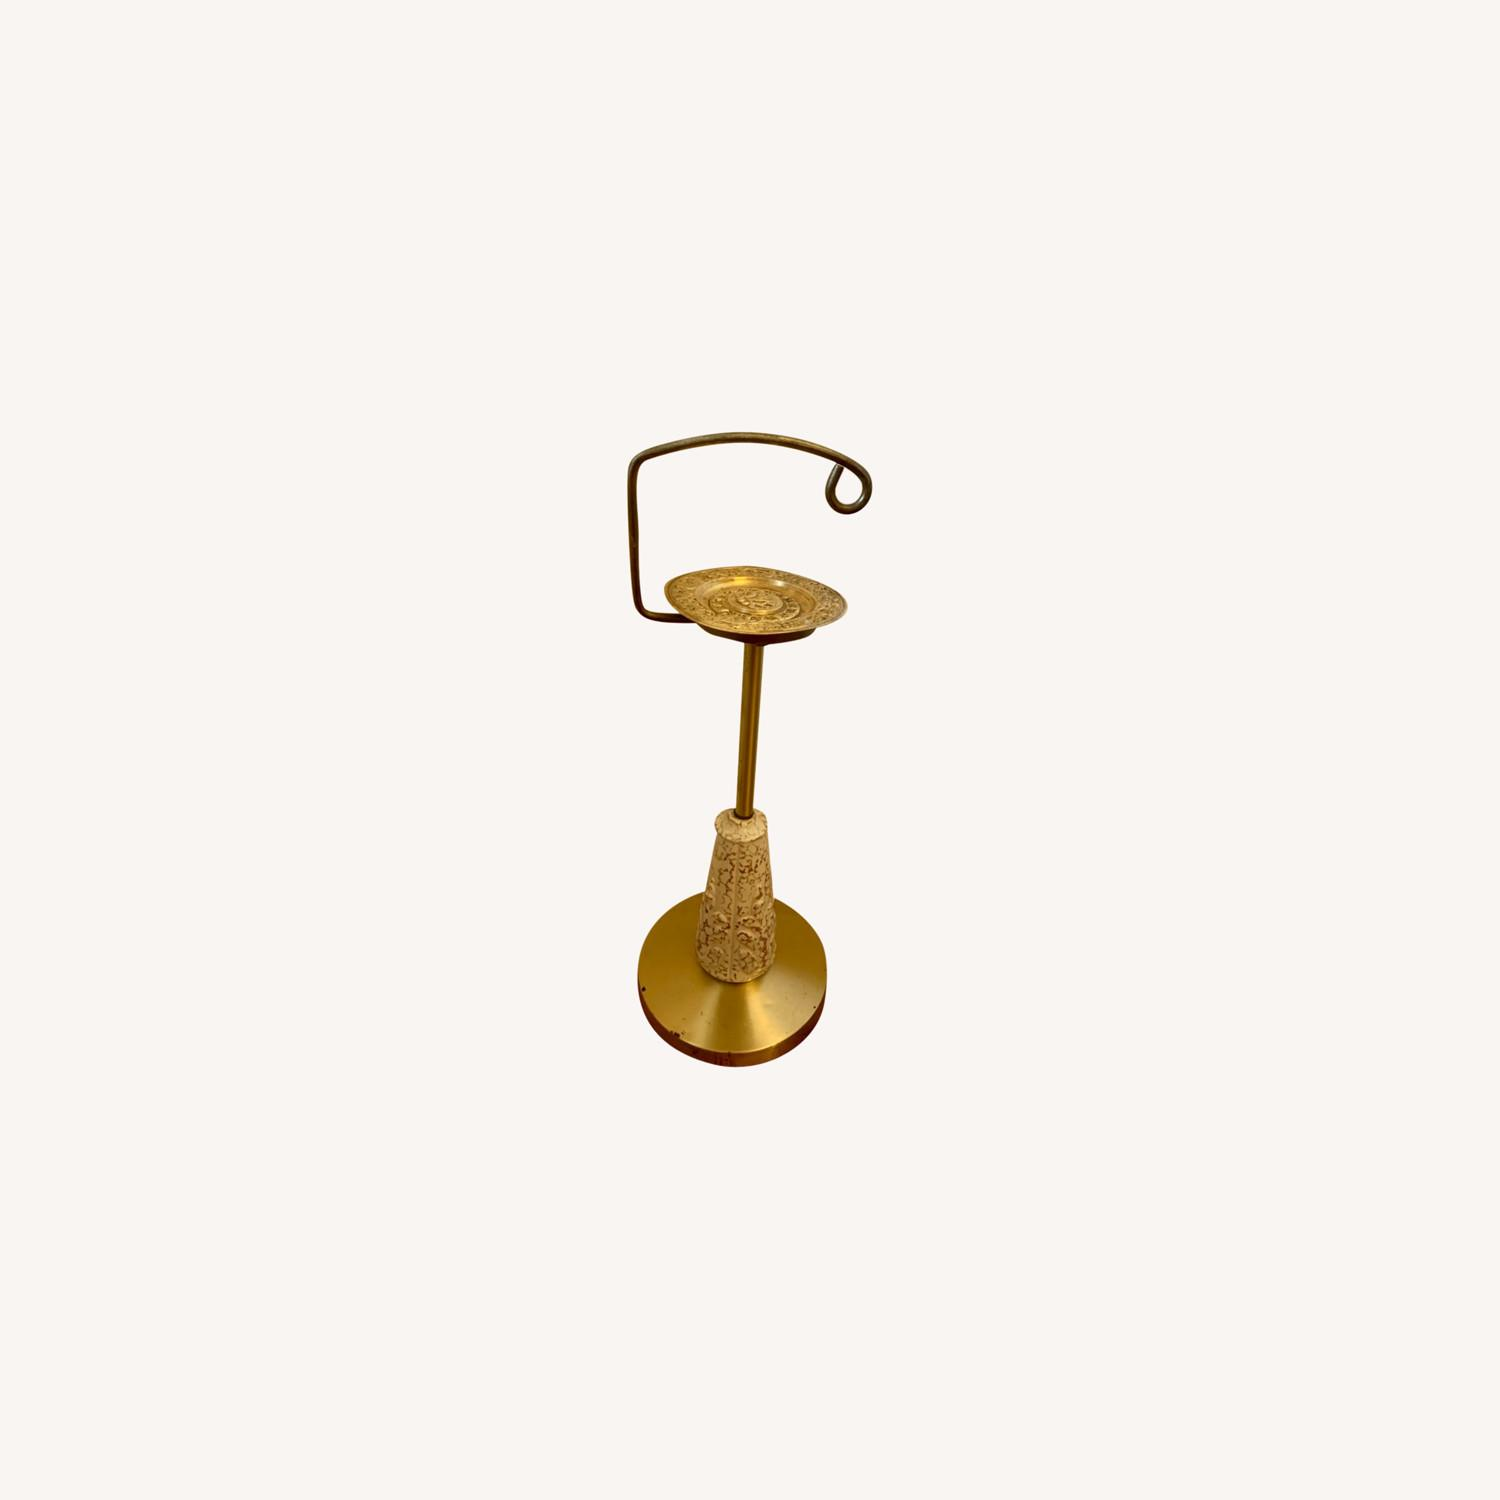 Vintage Brass, Ceramic and Gold Stand - image-0